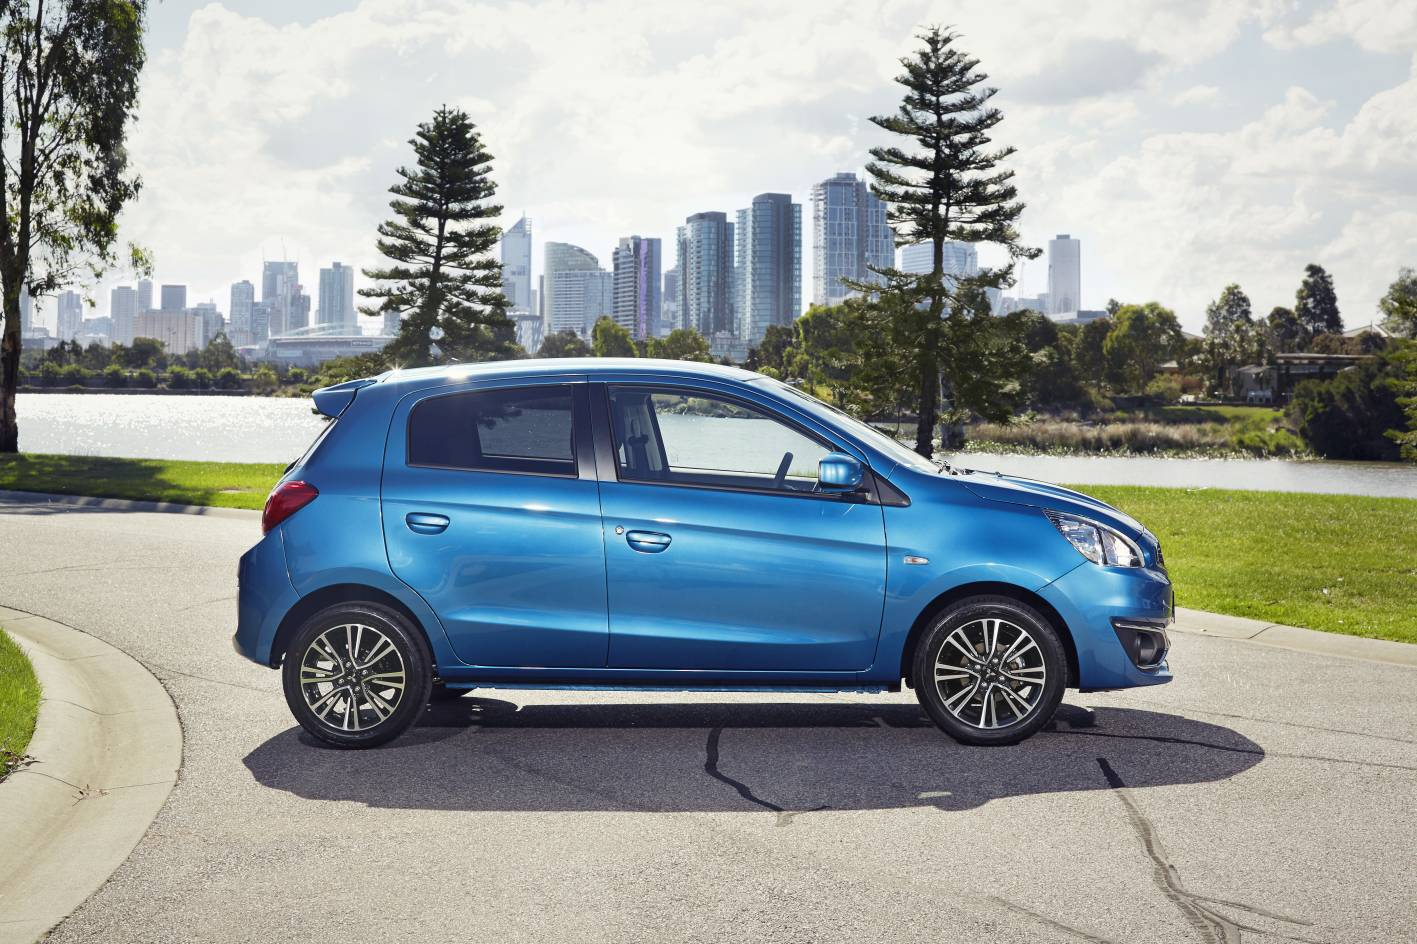 News: Mitsubishi Mirage Facelifted For 2016